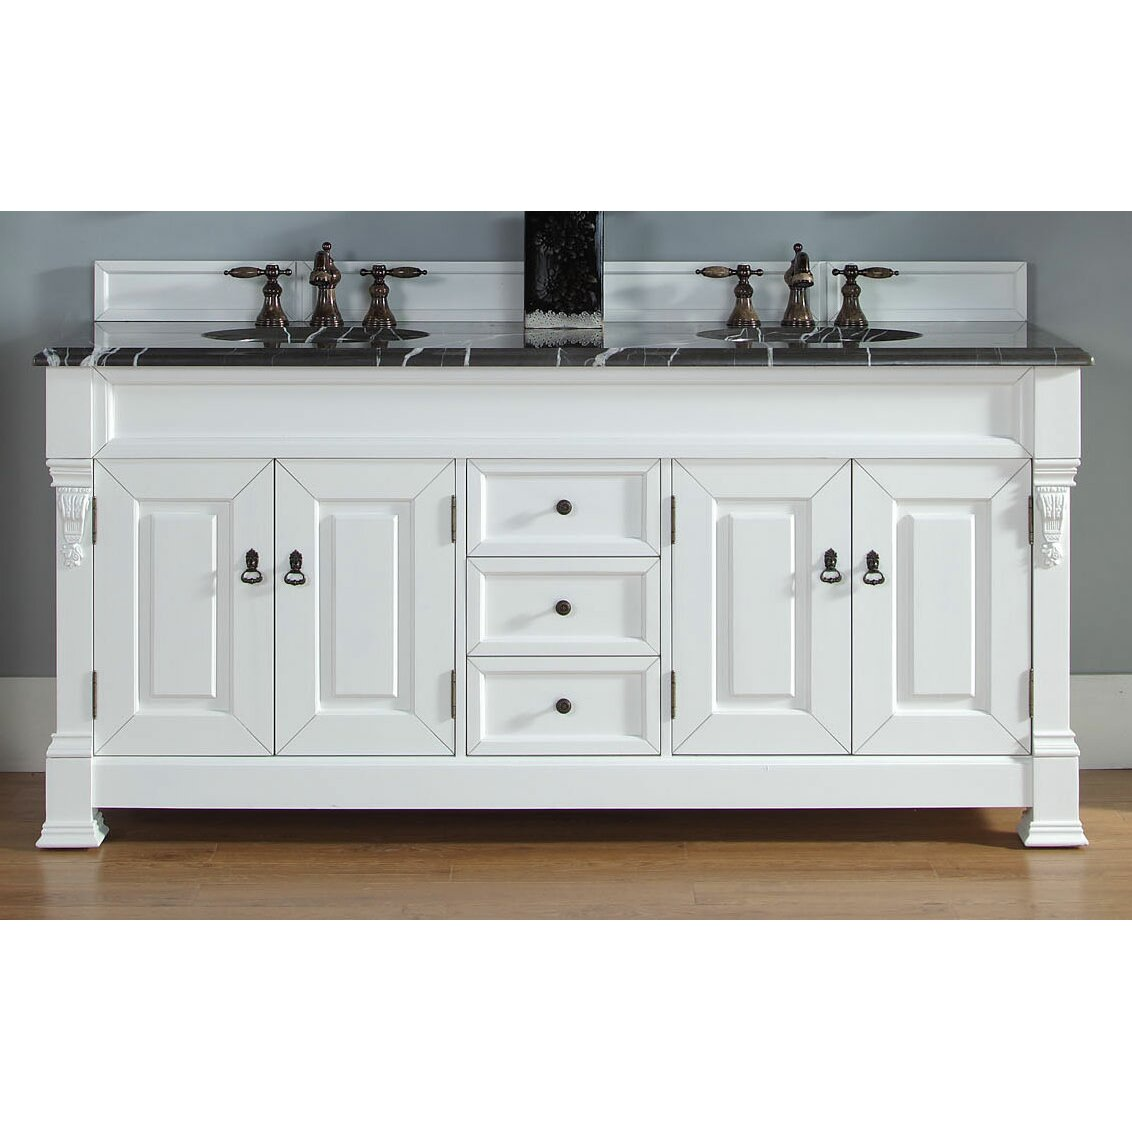 James martin furniture brookfield 72 double bathroom for Bathroom 72 double vanity